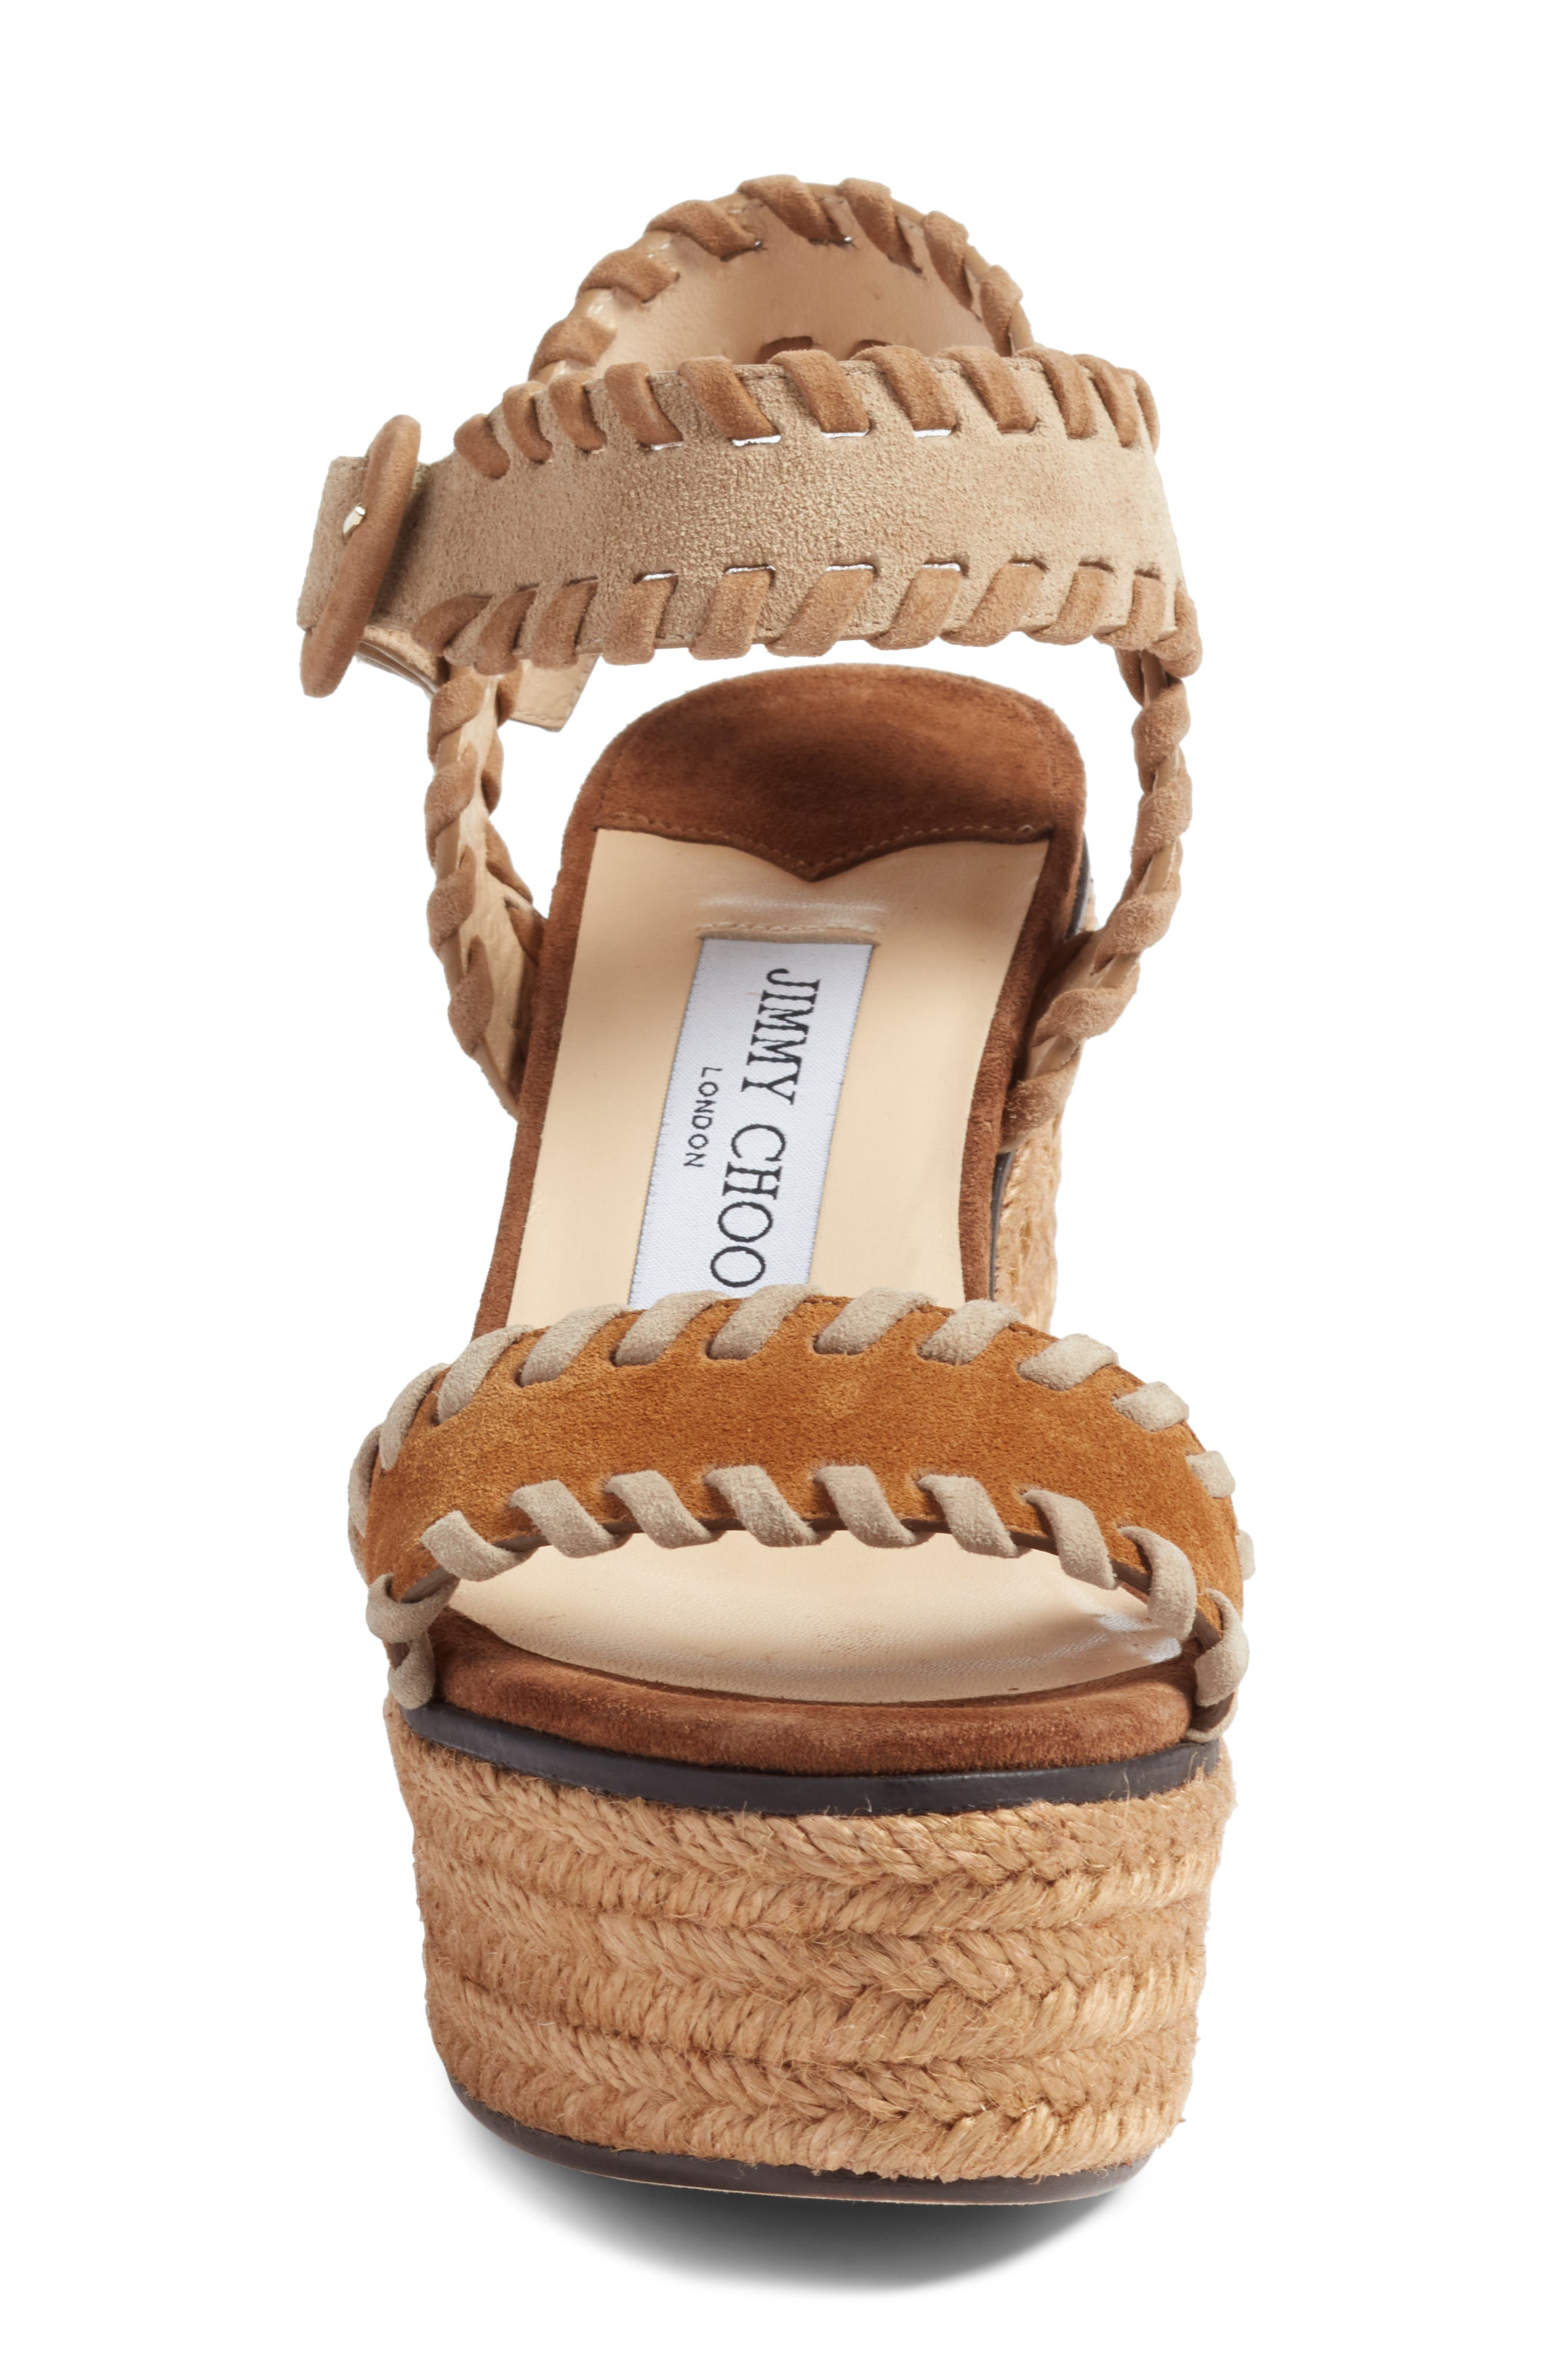 JIMMY CHOO, Abigail Whipstitch Wedge, Alternate thumbnail 4, color, NATURAL/ BROWN